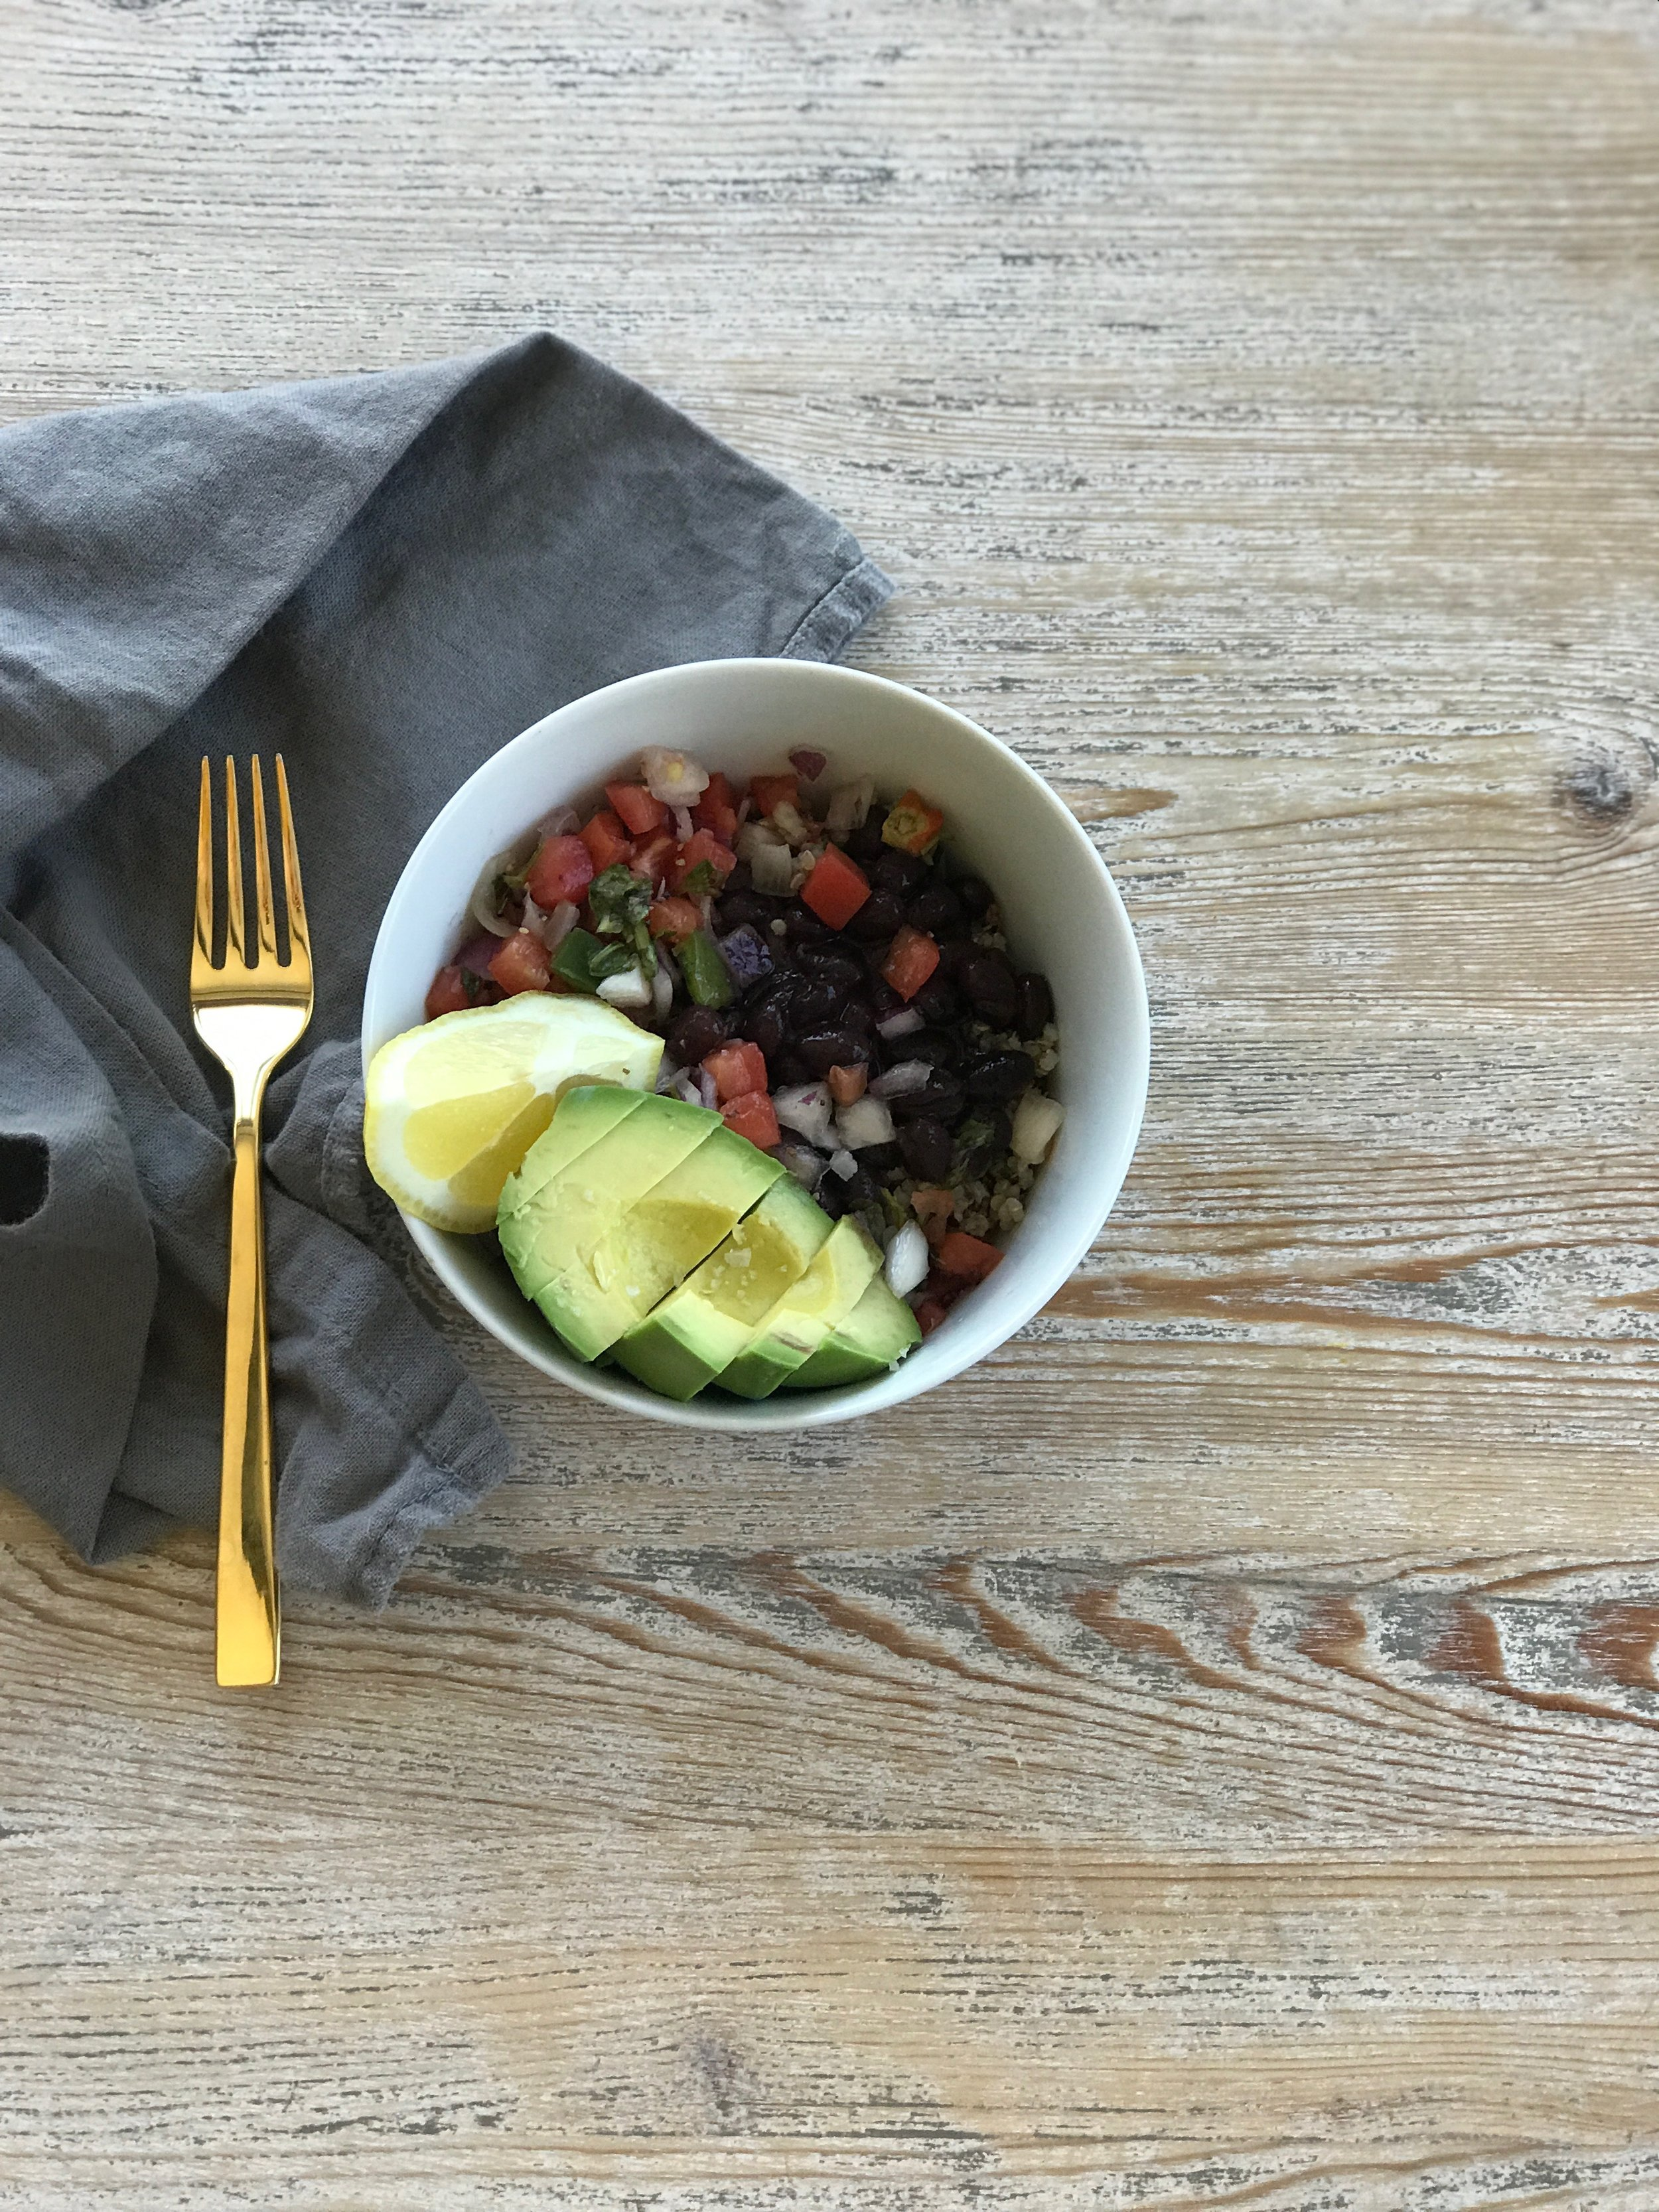 Easily meal prepped as you can store all the ingredients in separate containers for a few days in the fridge. The black beans provide antioxidants and protein along with the quinoa and tofu